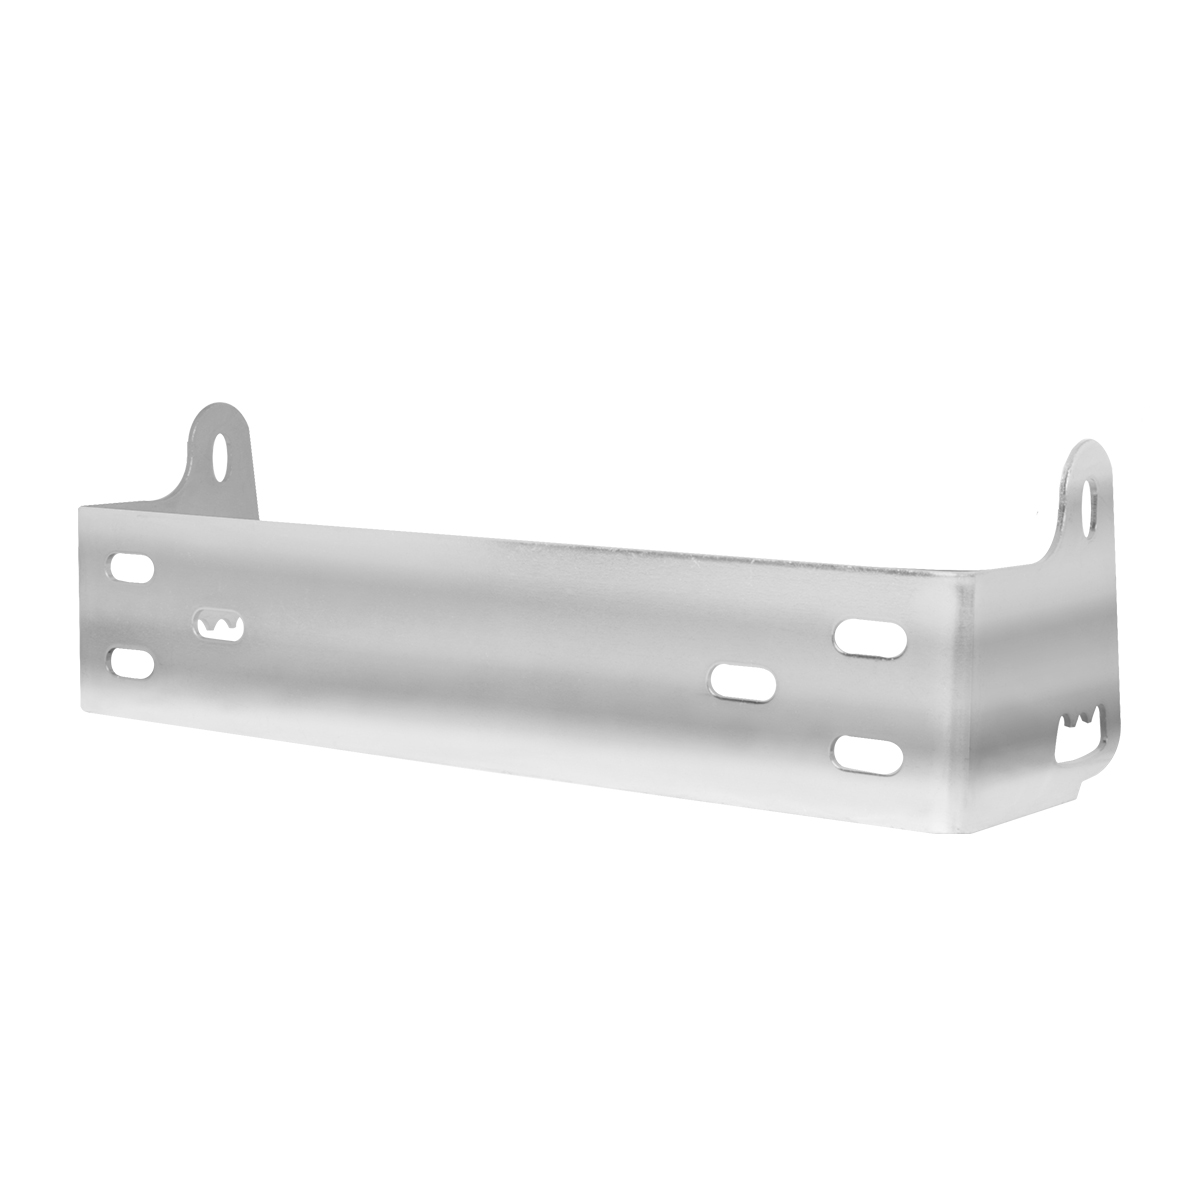 Zinc Plated Universal Mounting Bracket for C.B. Radio